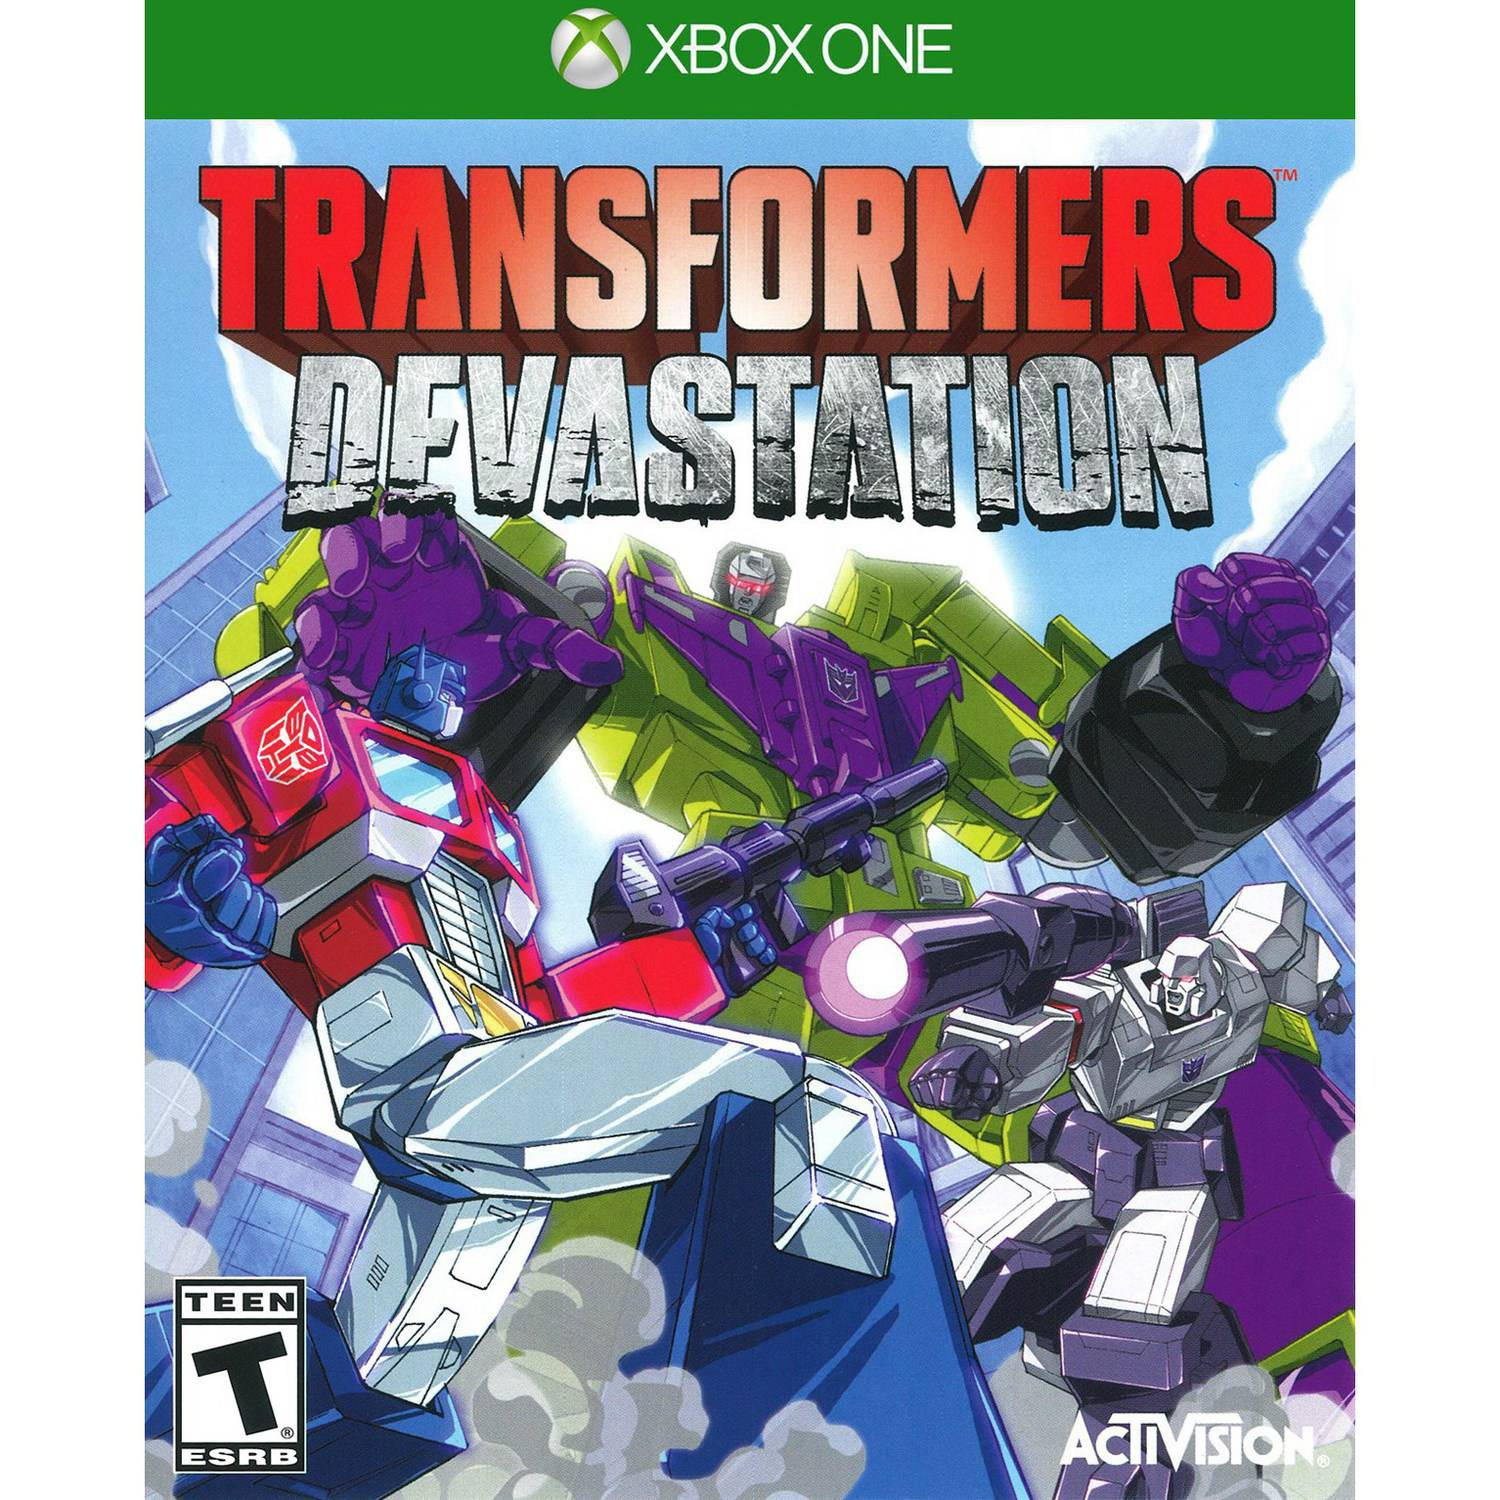 Transformers Devastation, Activision, Xbox One, 047875771208